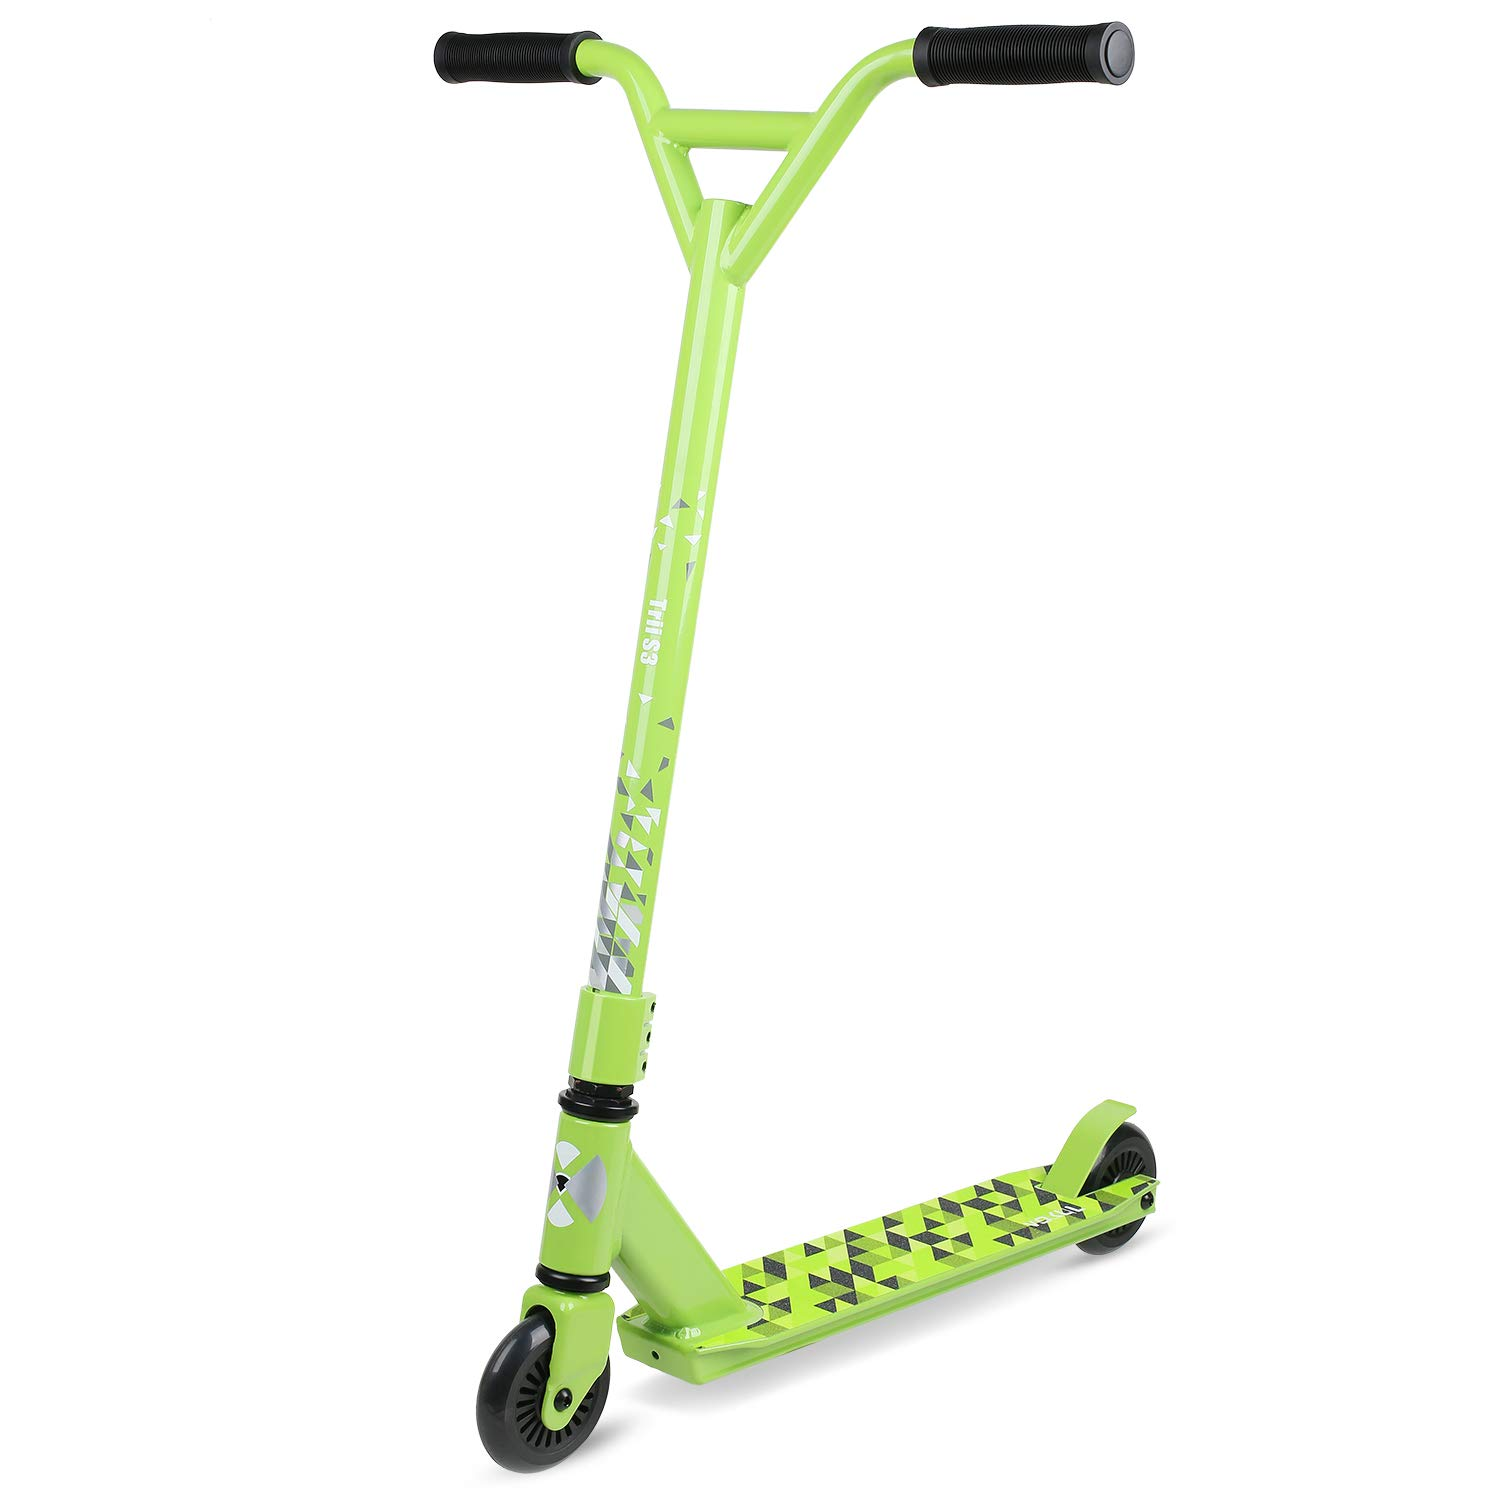 VOKUL S2 Tricks Pro Stunt Scooter with Stable Performance - Best Entry Level Freestyle Pro Scooter for Age 7 Up Kids,Boys,Girls - CrMo4130 Chromoly Bar - Reinforced 20'' L4.1 W Deck (Grass Green)